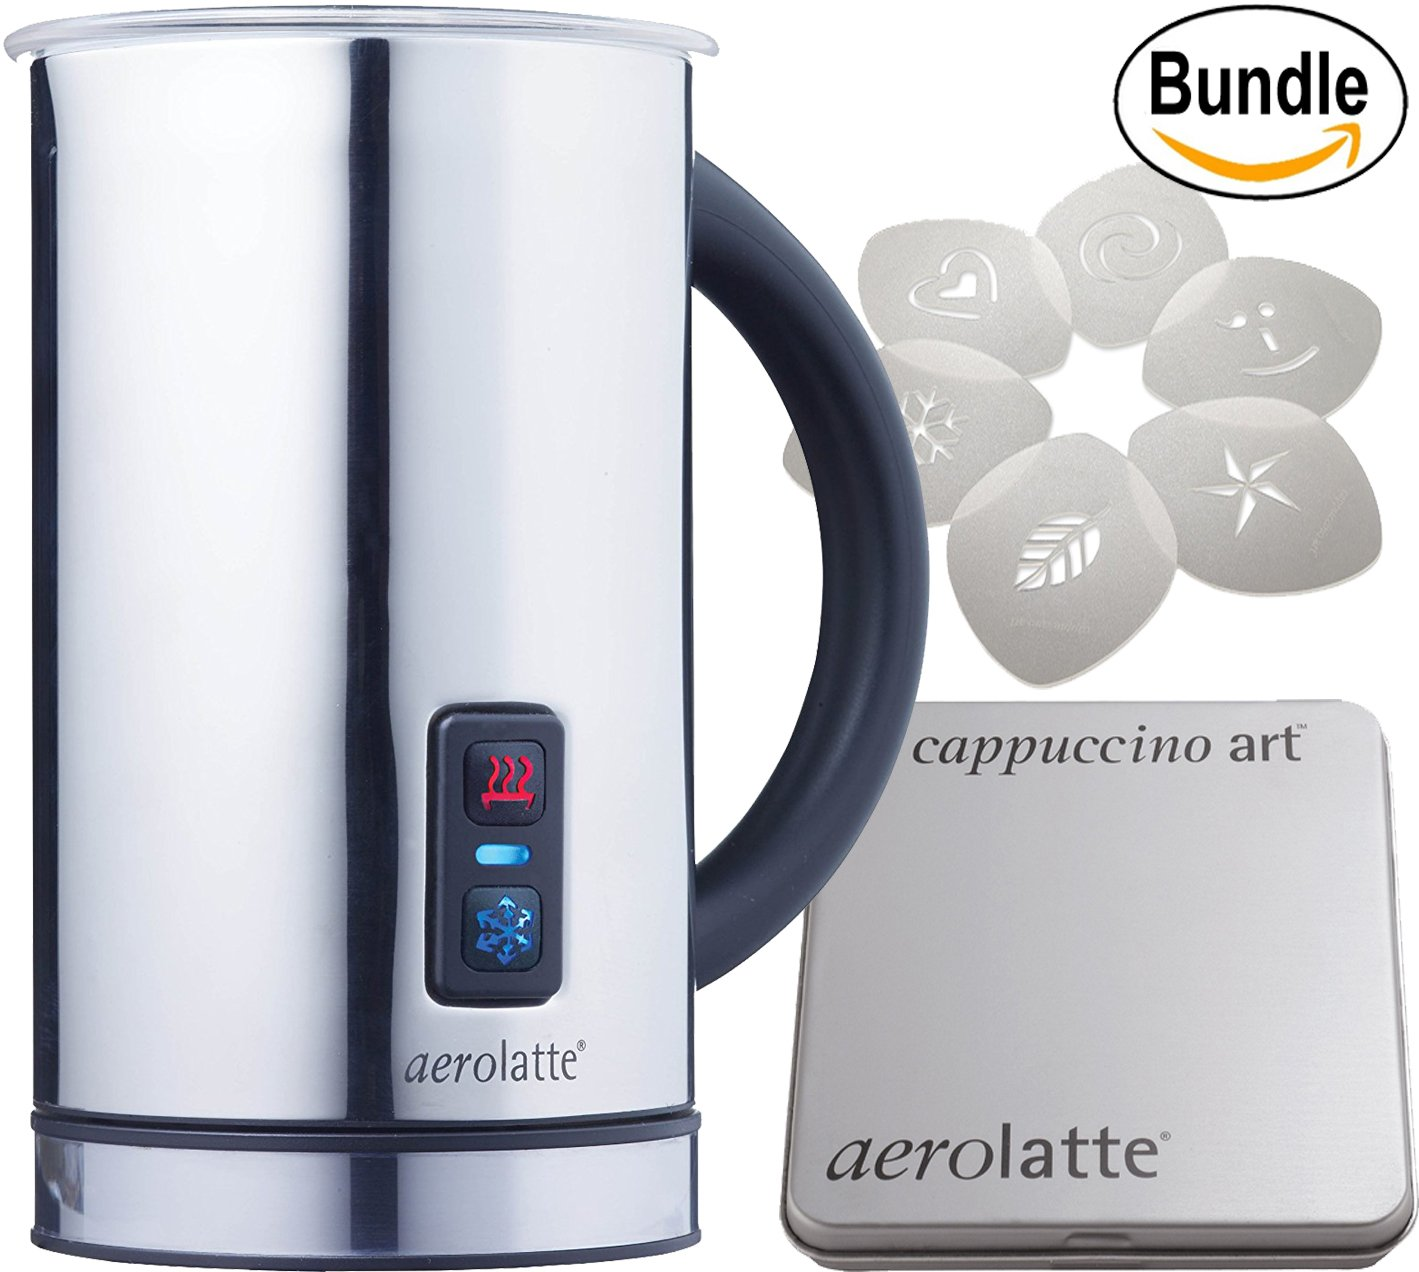 aerolatte Compact Automatic Hot or Cold Milk Frother and Cappuccino Foam Maker (11-1/2-Ounce), Stainless Steel & aerolatte Cappuccino Art Stencils, Set of 6 Bundle